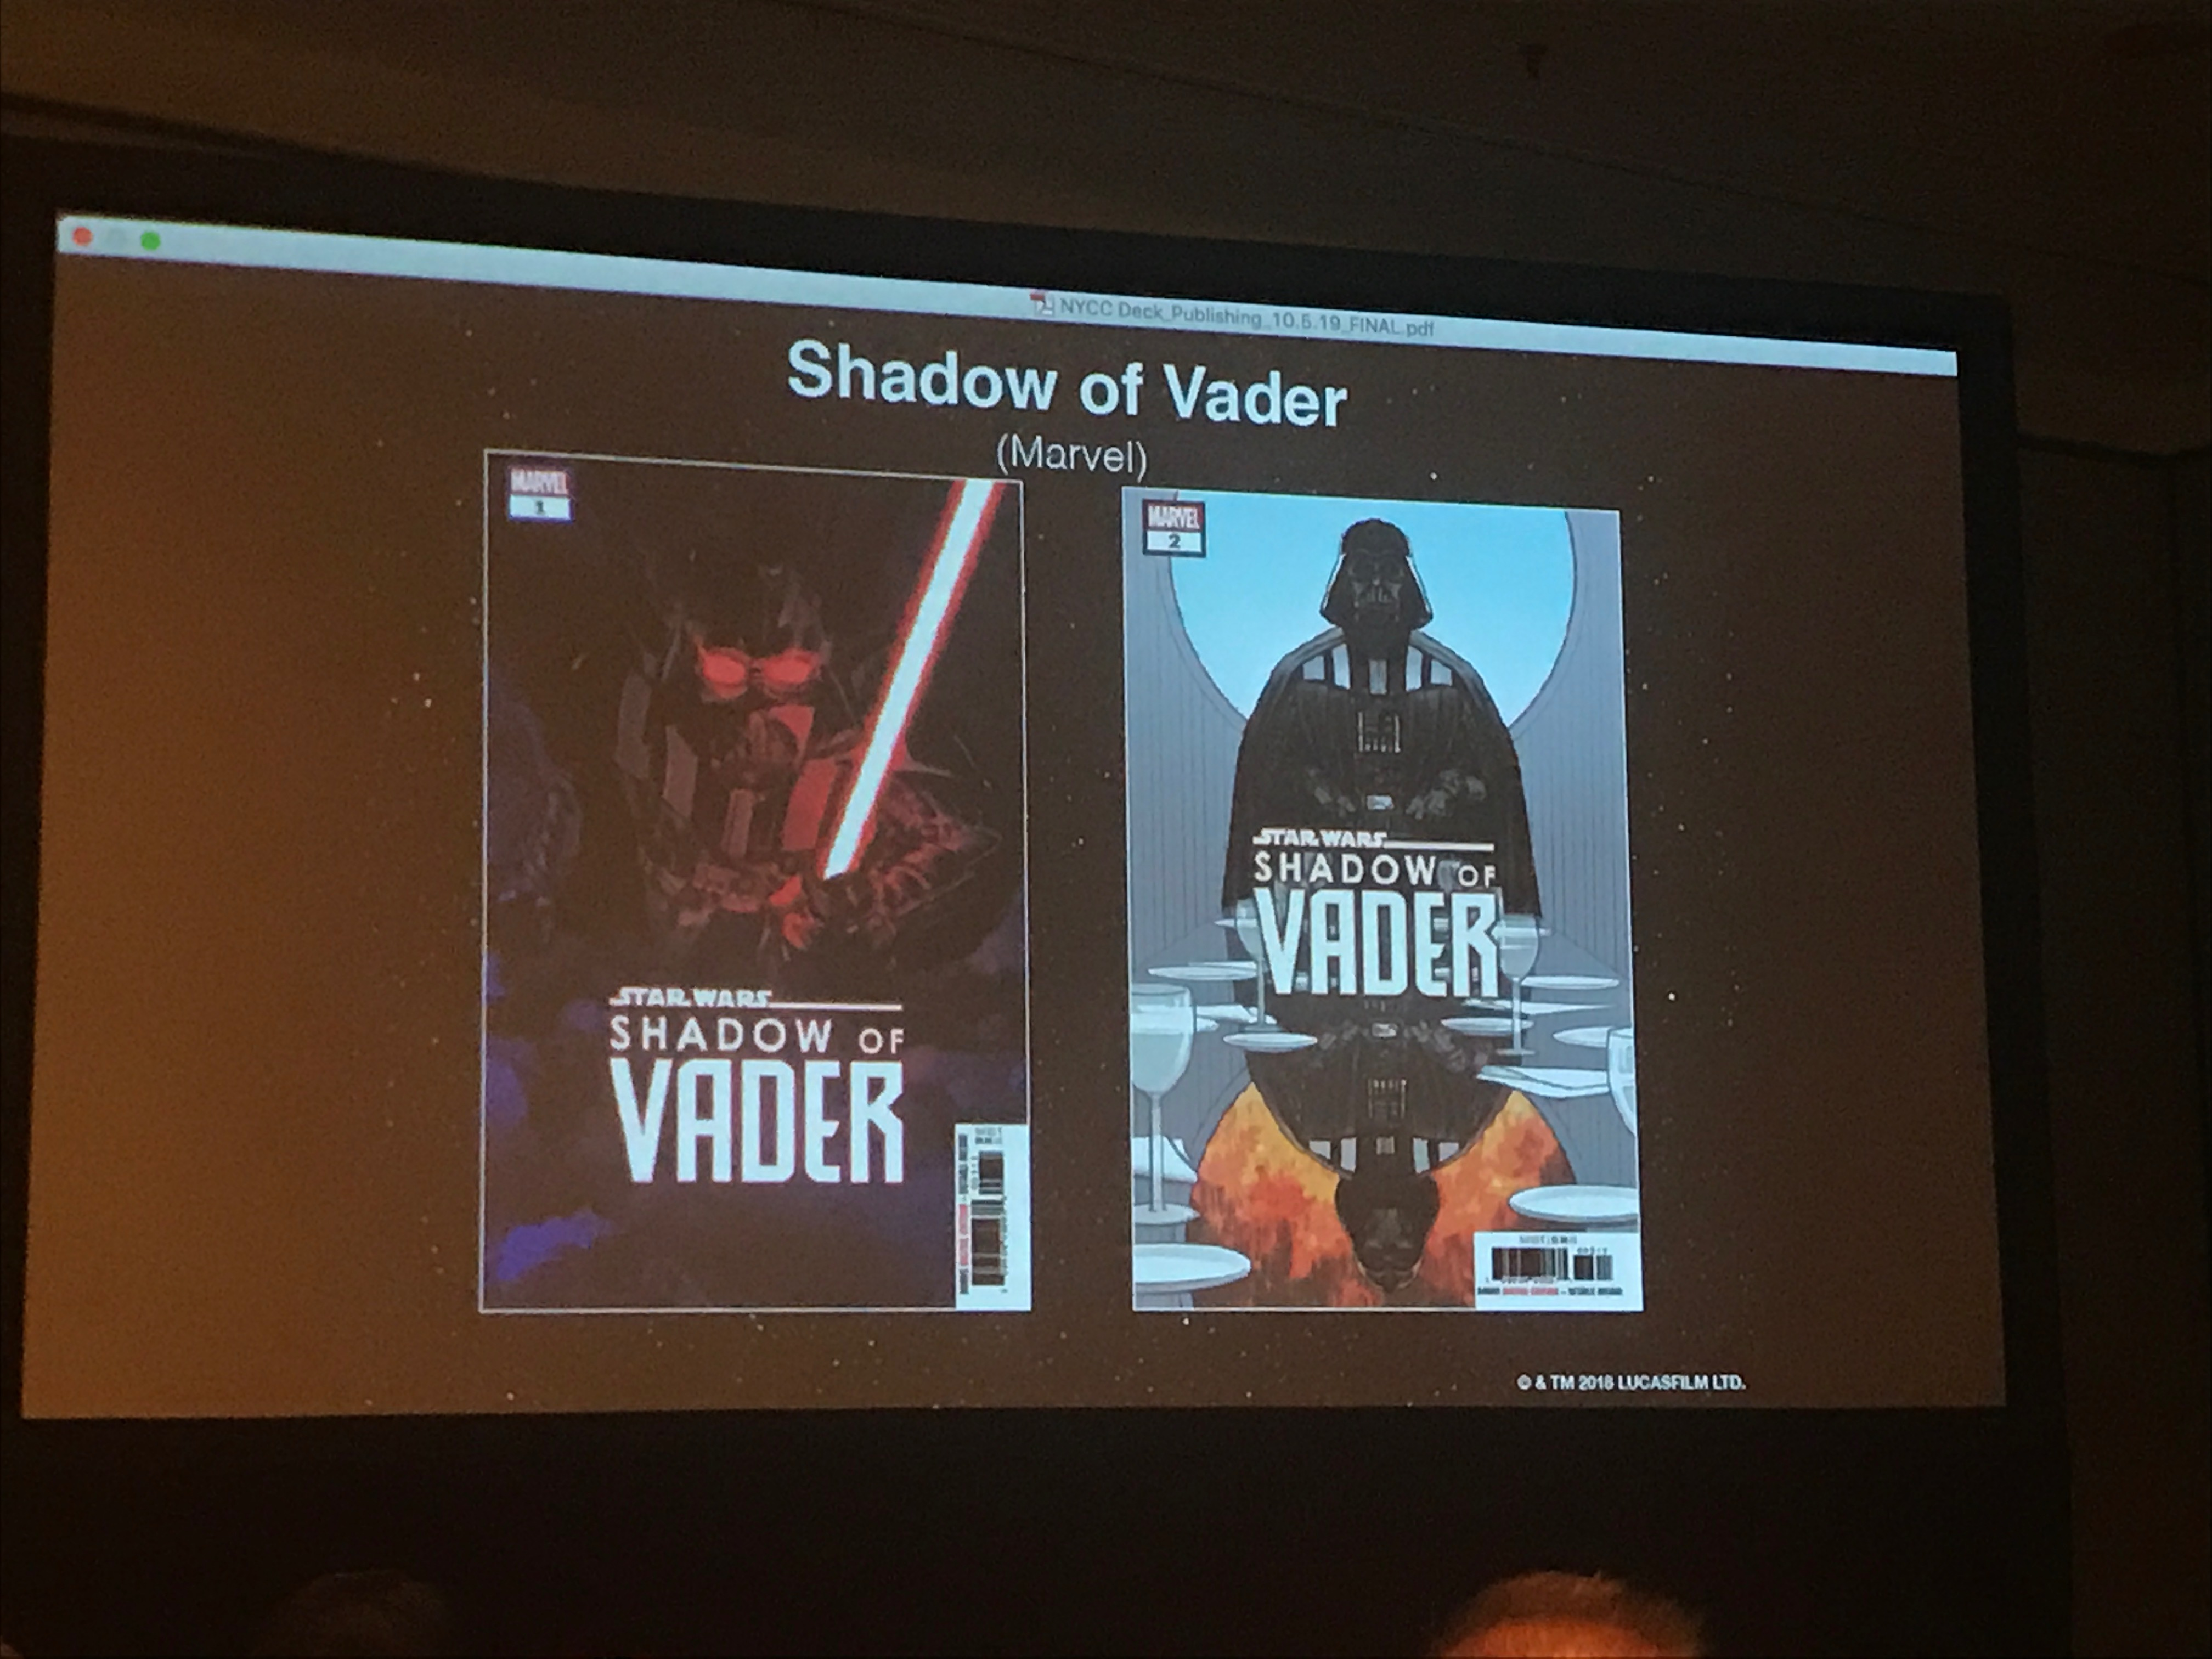 NYCC 2018: Shadow of Vader comic series announced with Chuck Wendig as writer